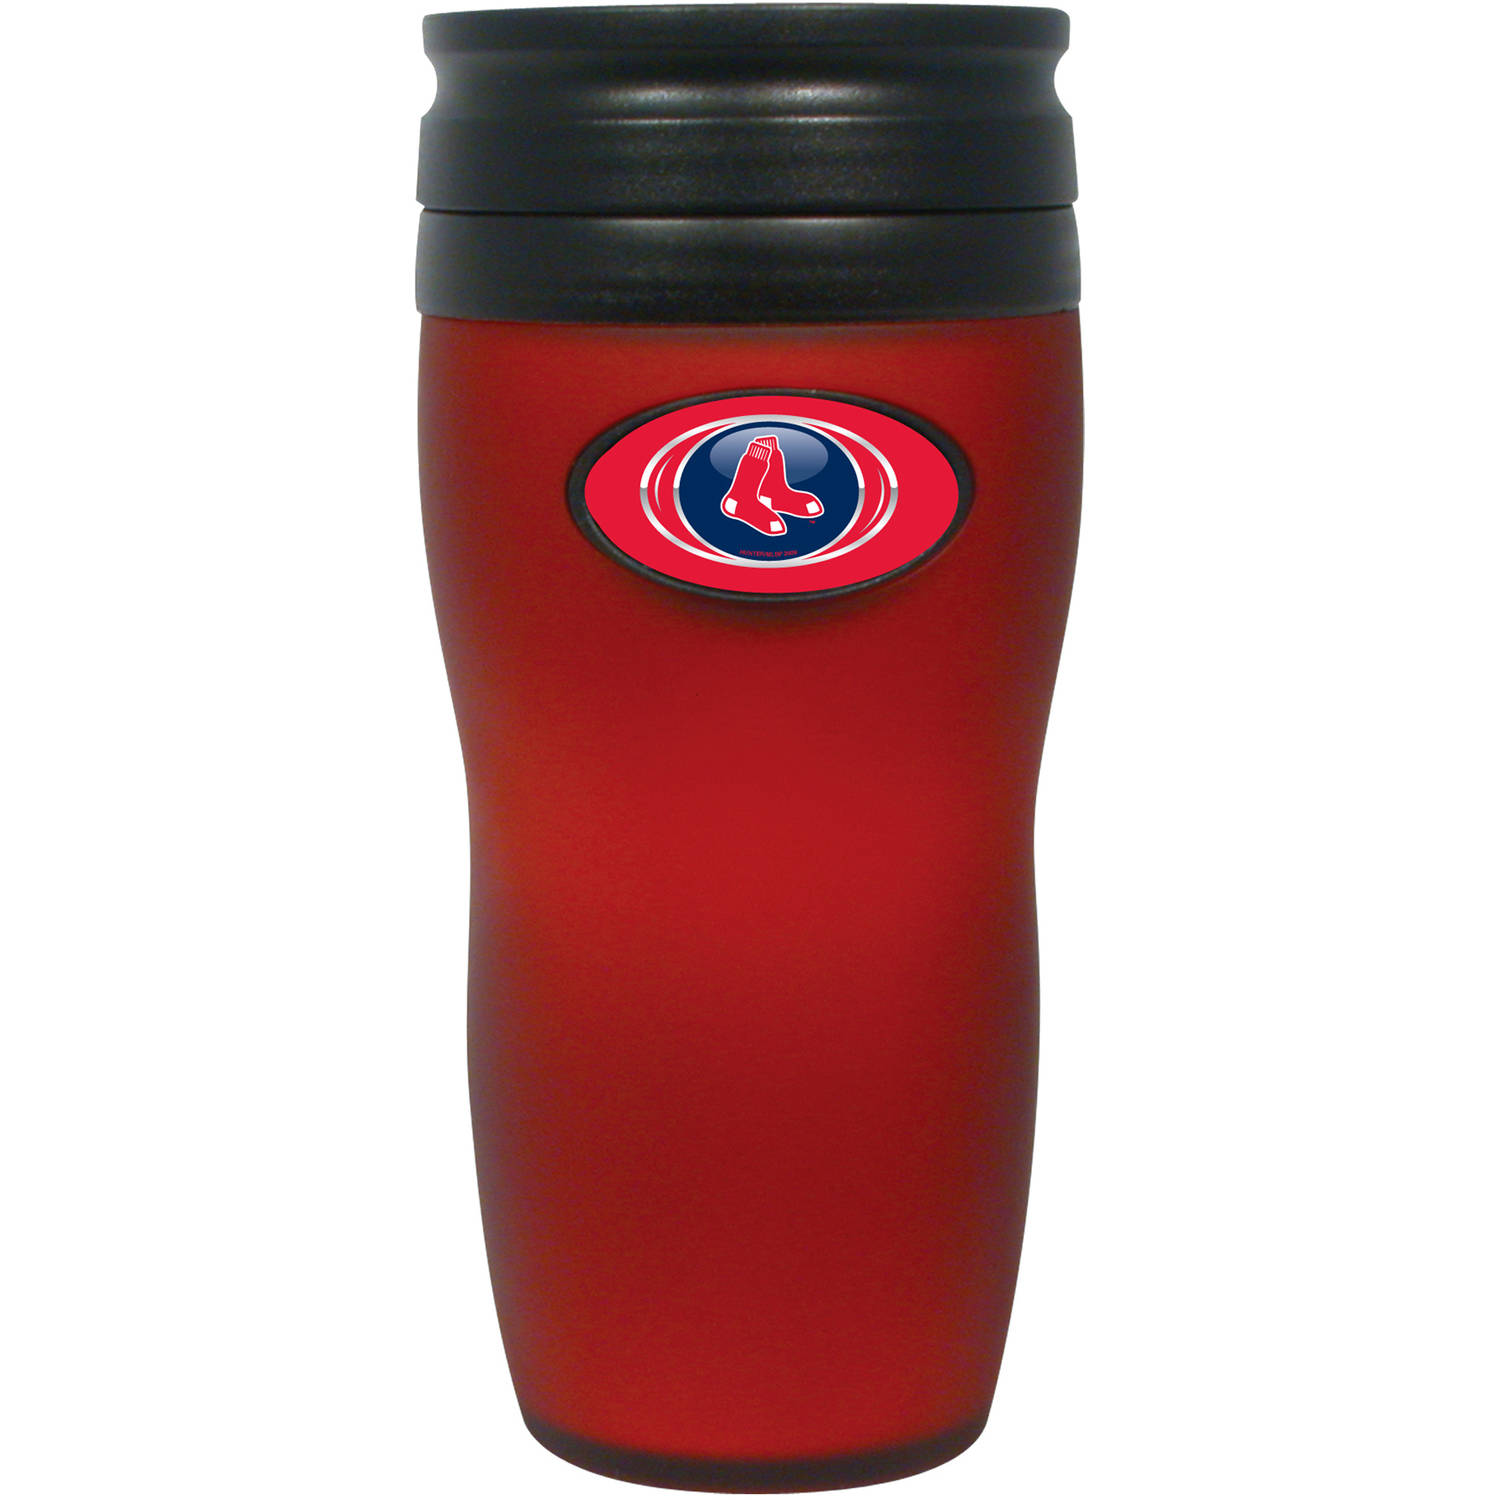 MLB Soft Touch Travel Tumbler, Boston Red Sox